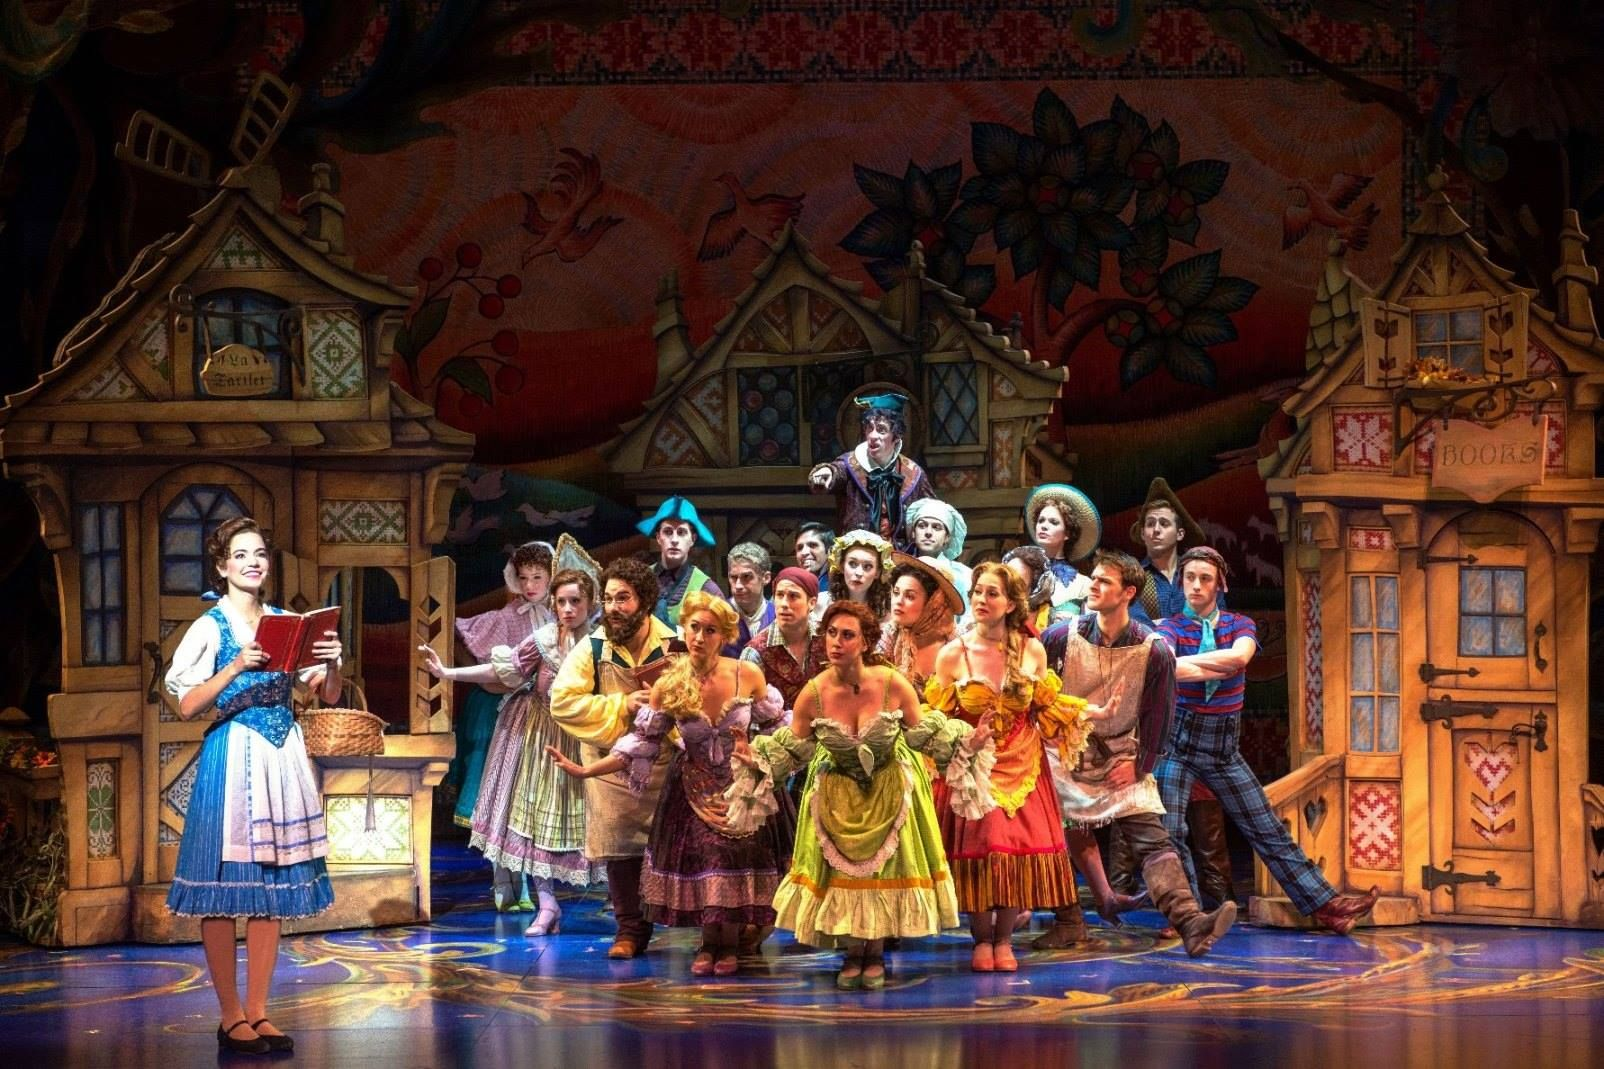 BEAUTY AND THE BEAST is coming to the Venetian Theatre for a limited season (June 13 until July 26). Further good news is that a host of Cotai Central accommodation packages will accompany the show, staying at such establishments as The Venetian Macao, Conrad Macao, Holiday Inn Macao and Sheraton Macao. Check out www.sandsresortsmacao.com #wowmacau #macau #visitmacau www.macautourism.gov.mo